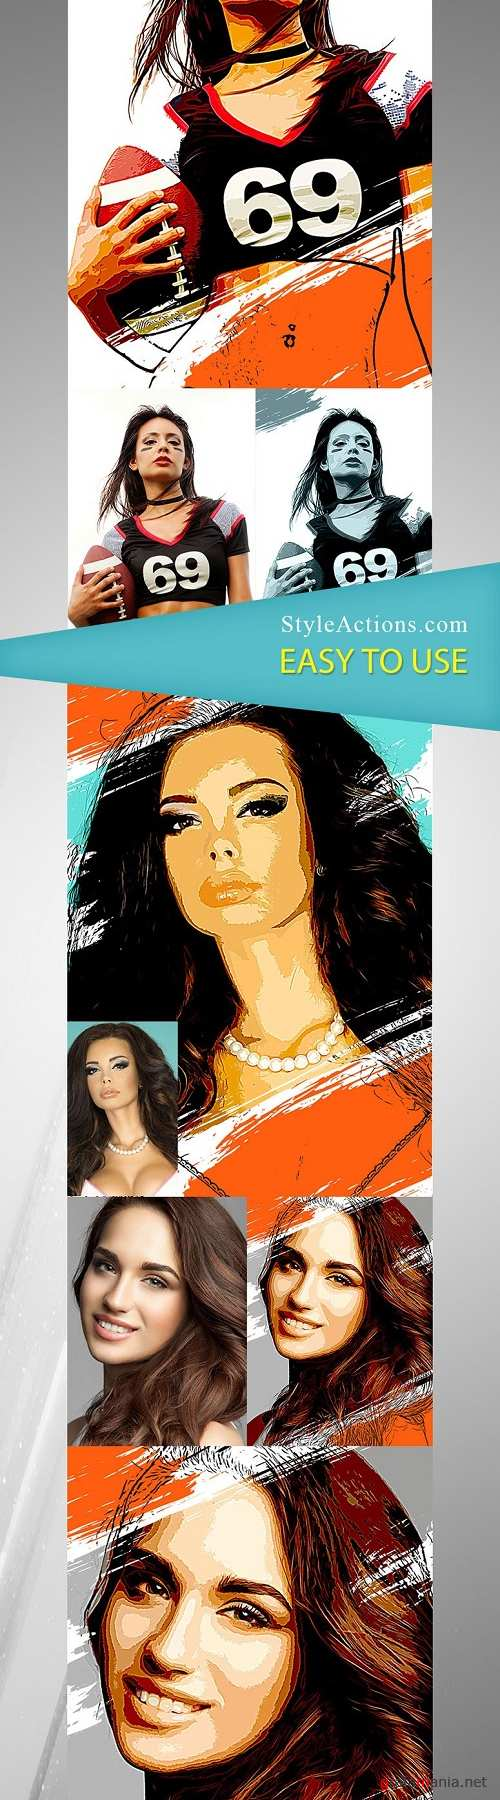 StyleActions - Vector Style Photoshop Action